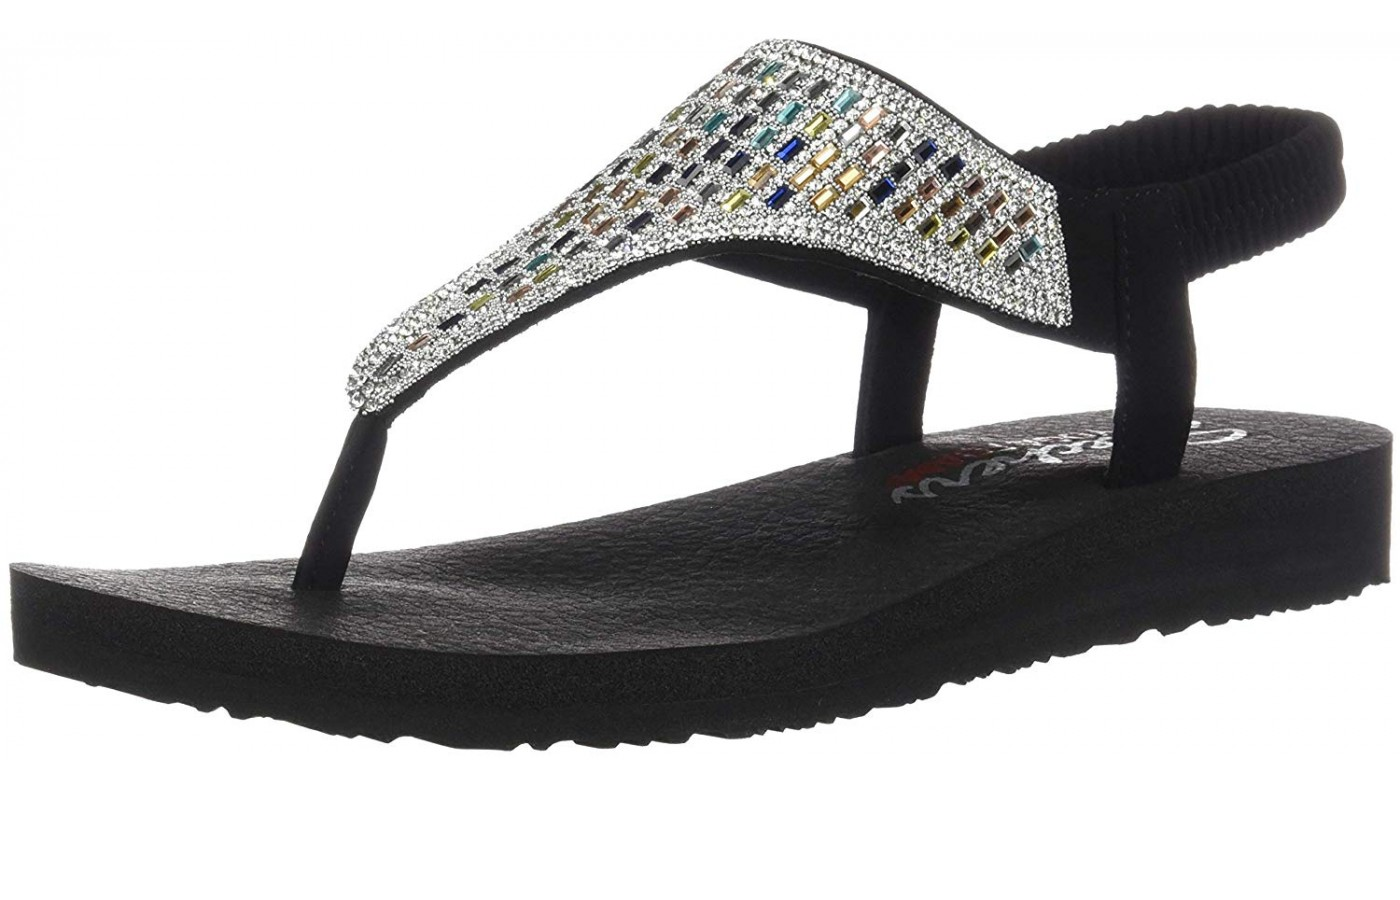 Skechers Meditation - Rock Crown Angled